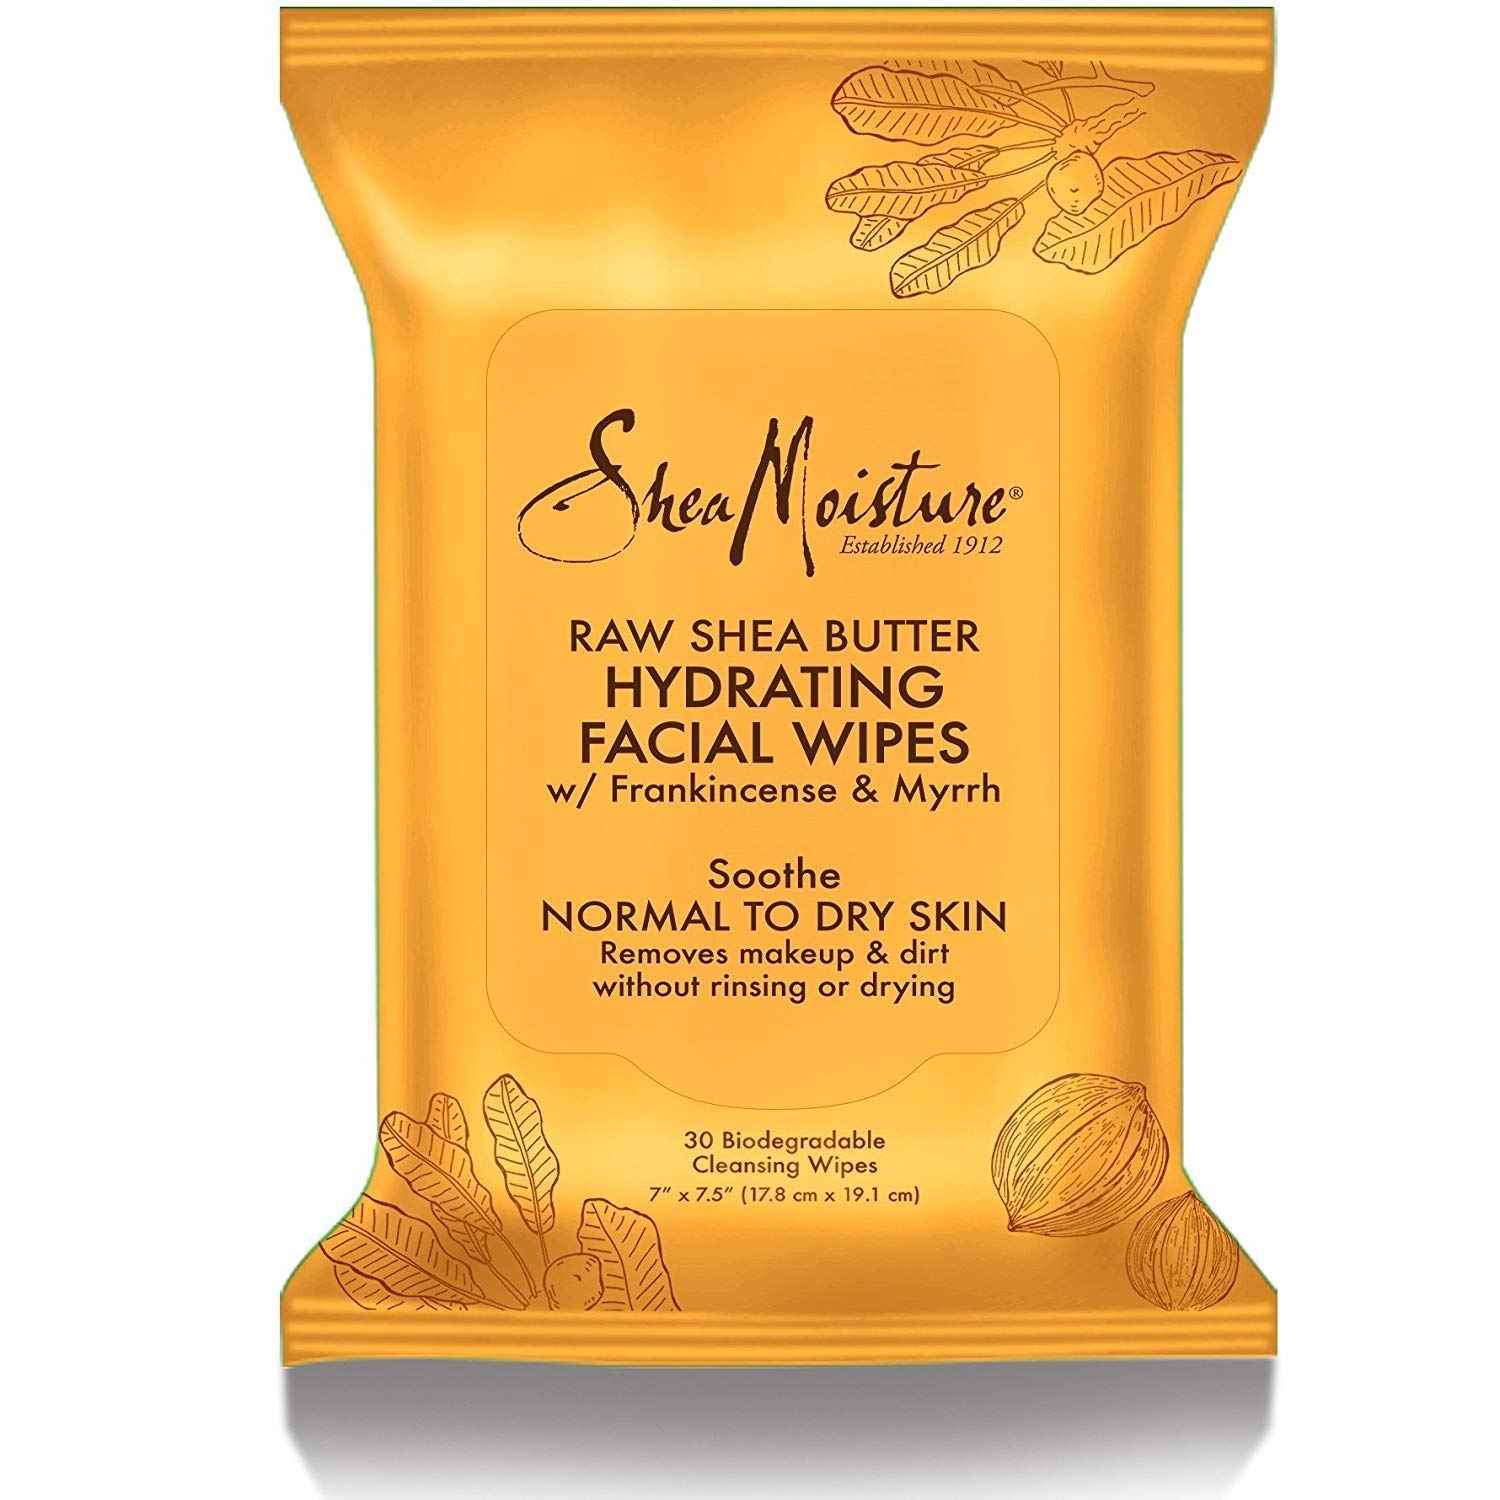 Shea Moisture Raw Shea Facial Wipes, 30 Count